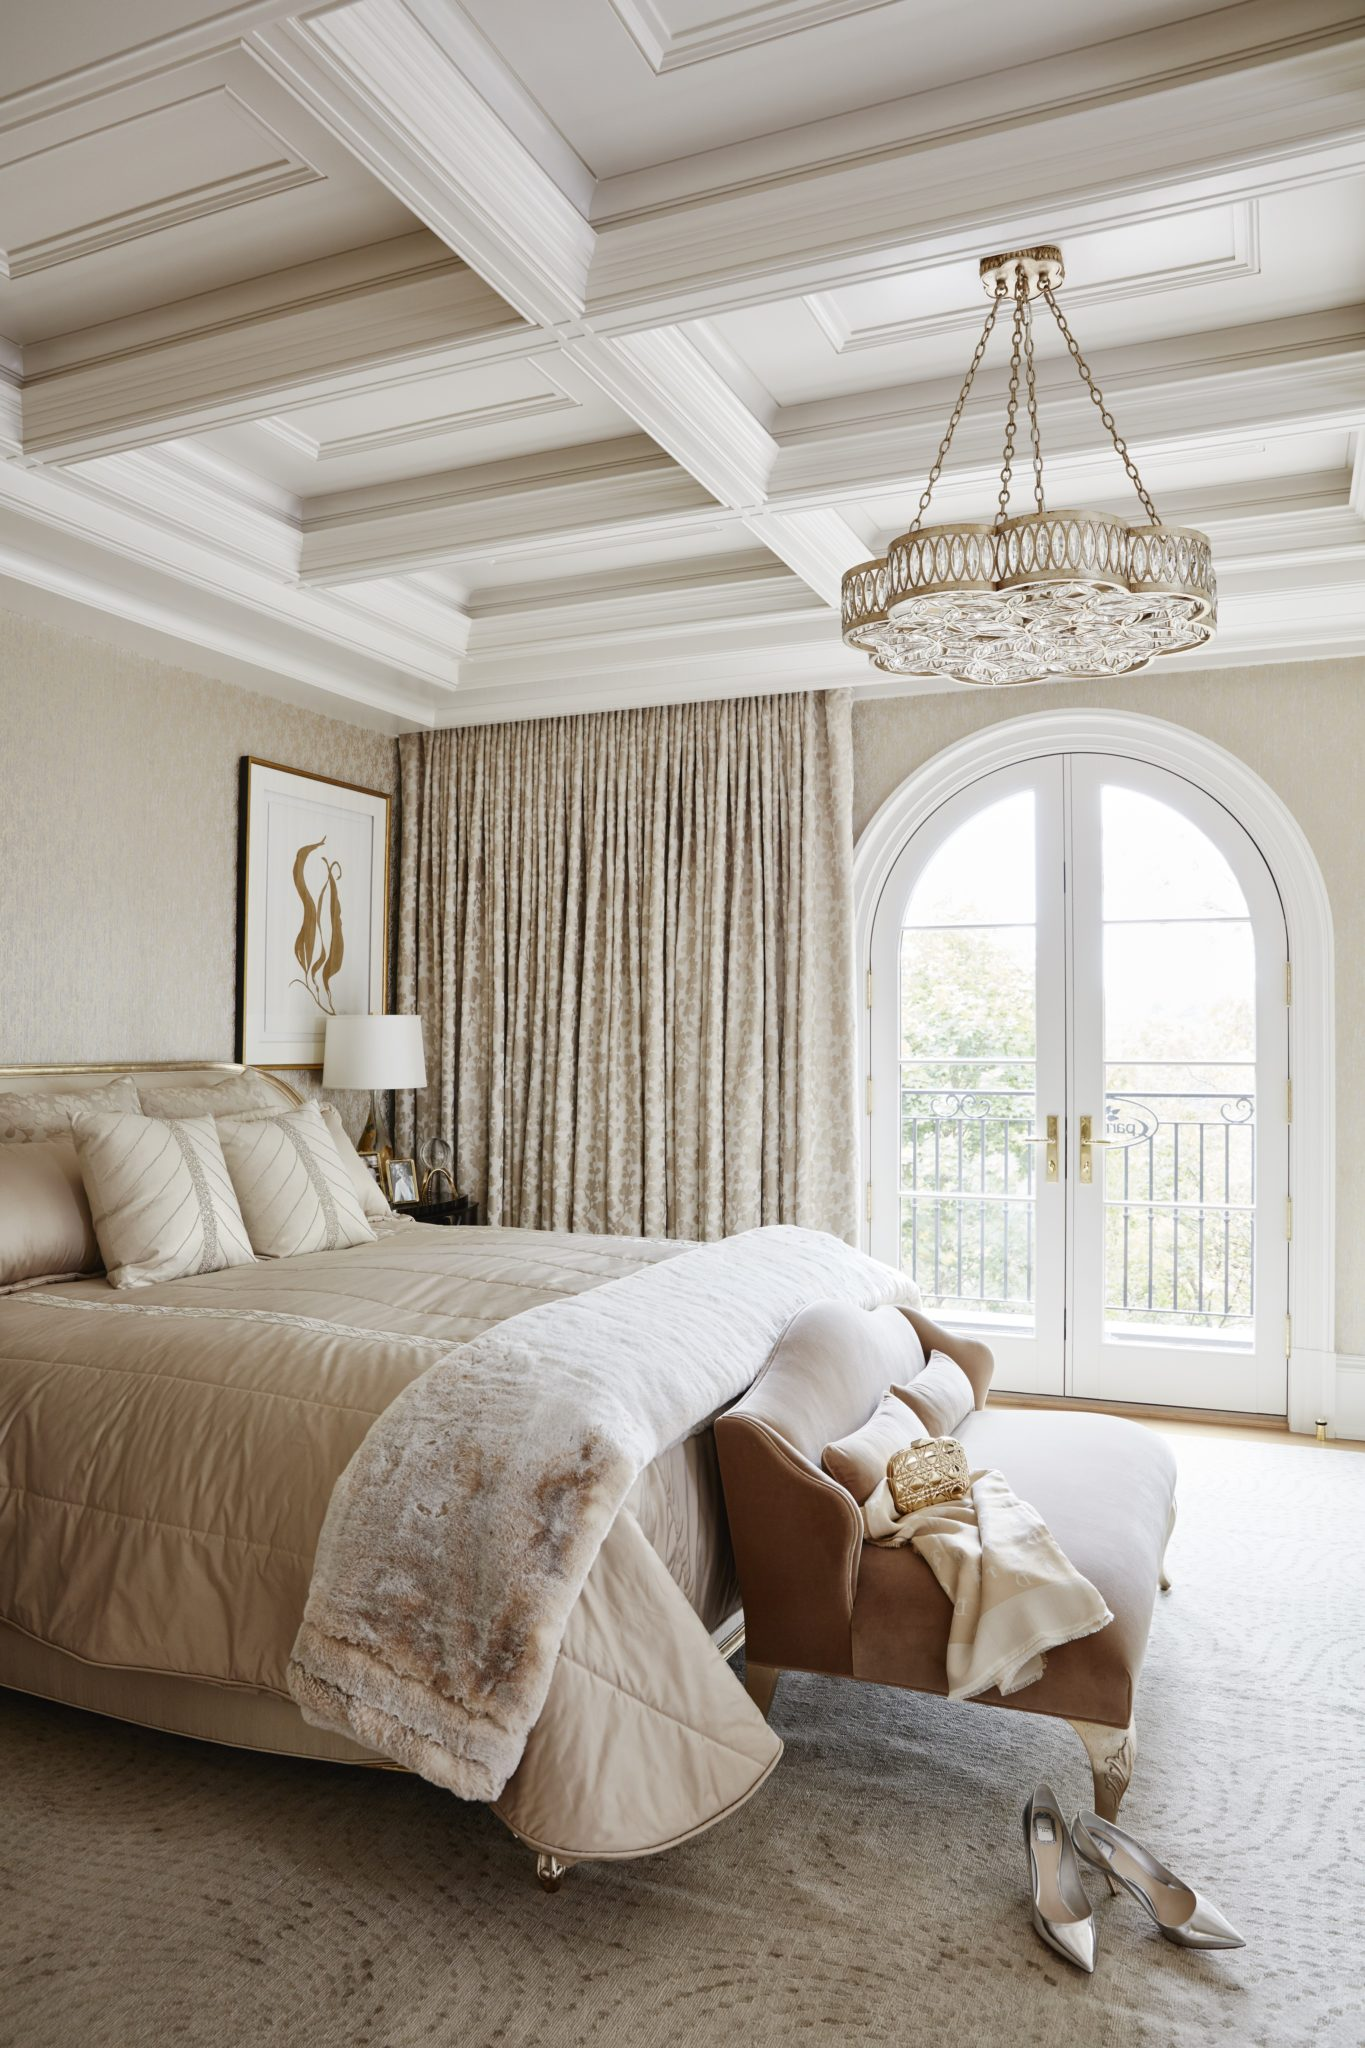 Master Bedroom in elegant neutrals, upholstered bed and metallic wallpaper by Alexandra Naranjo Designs